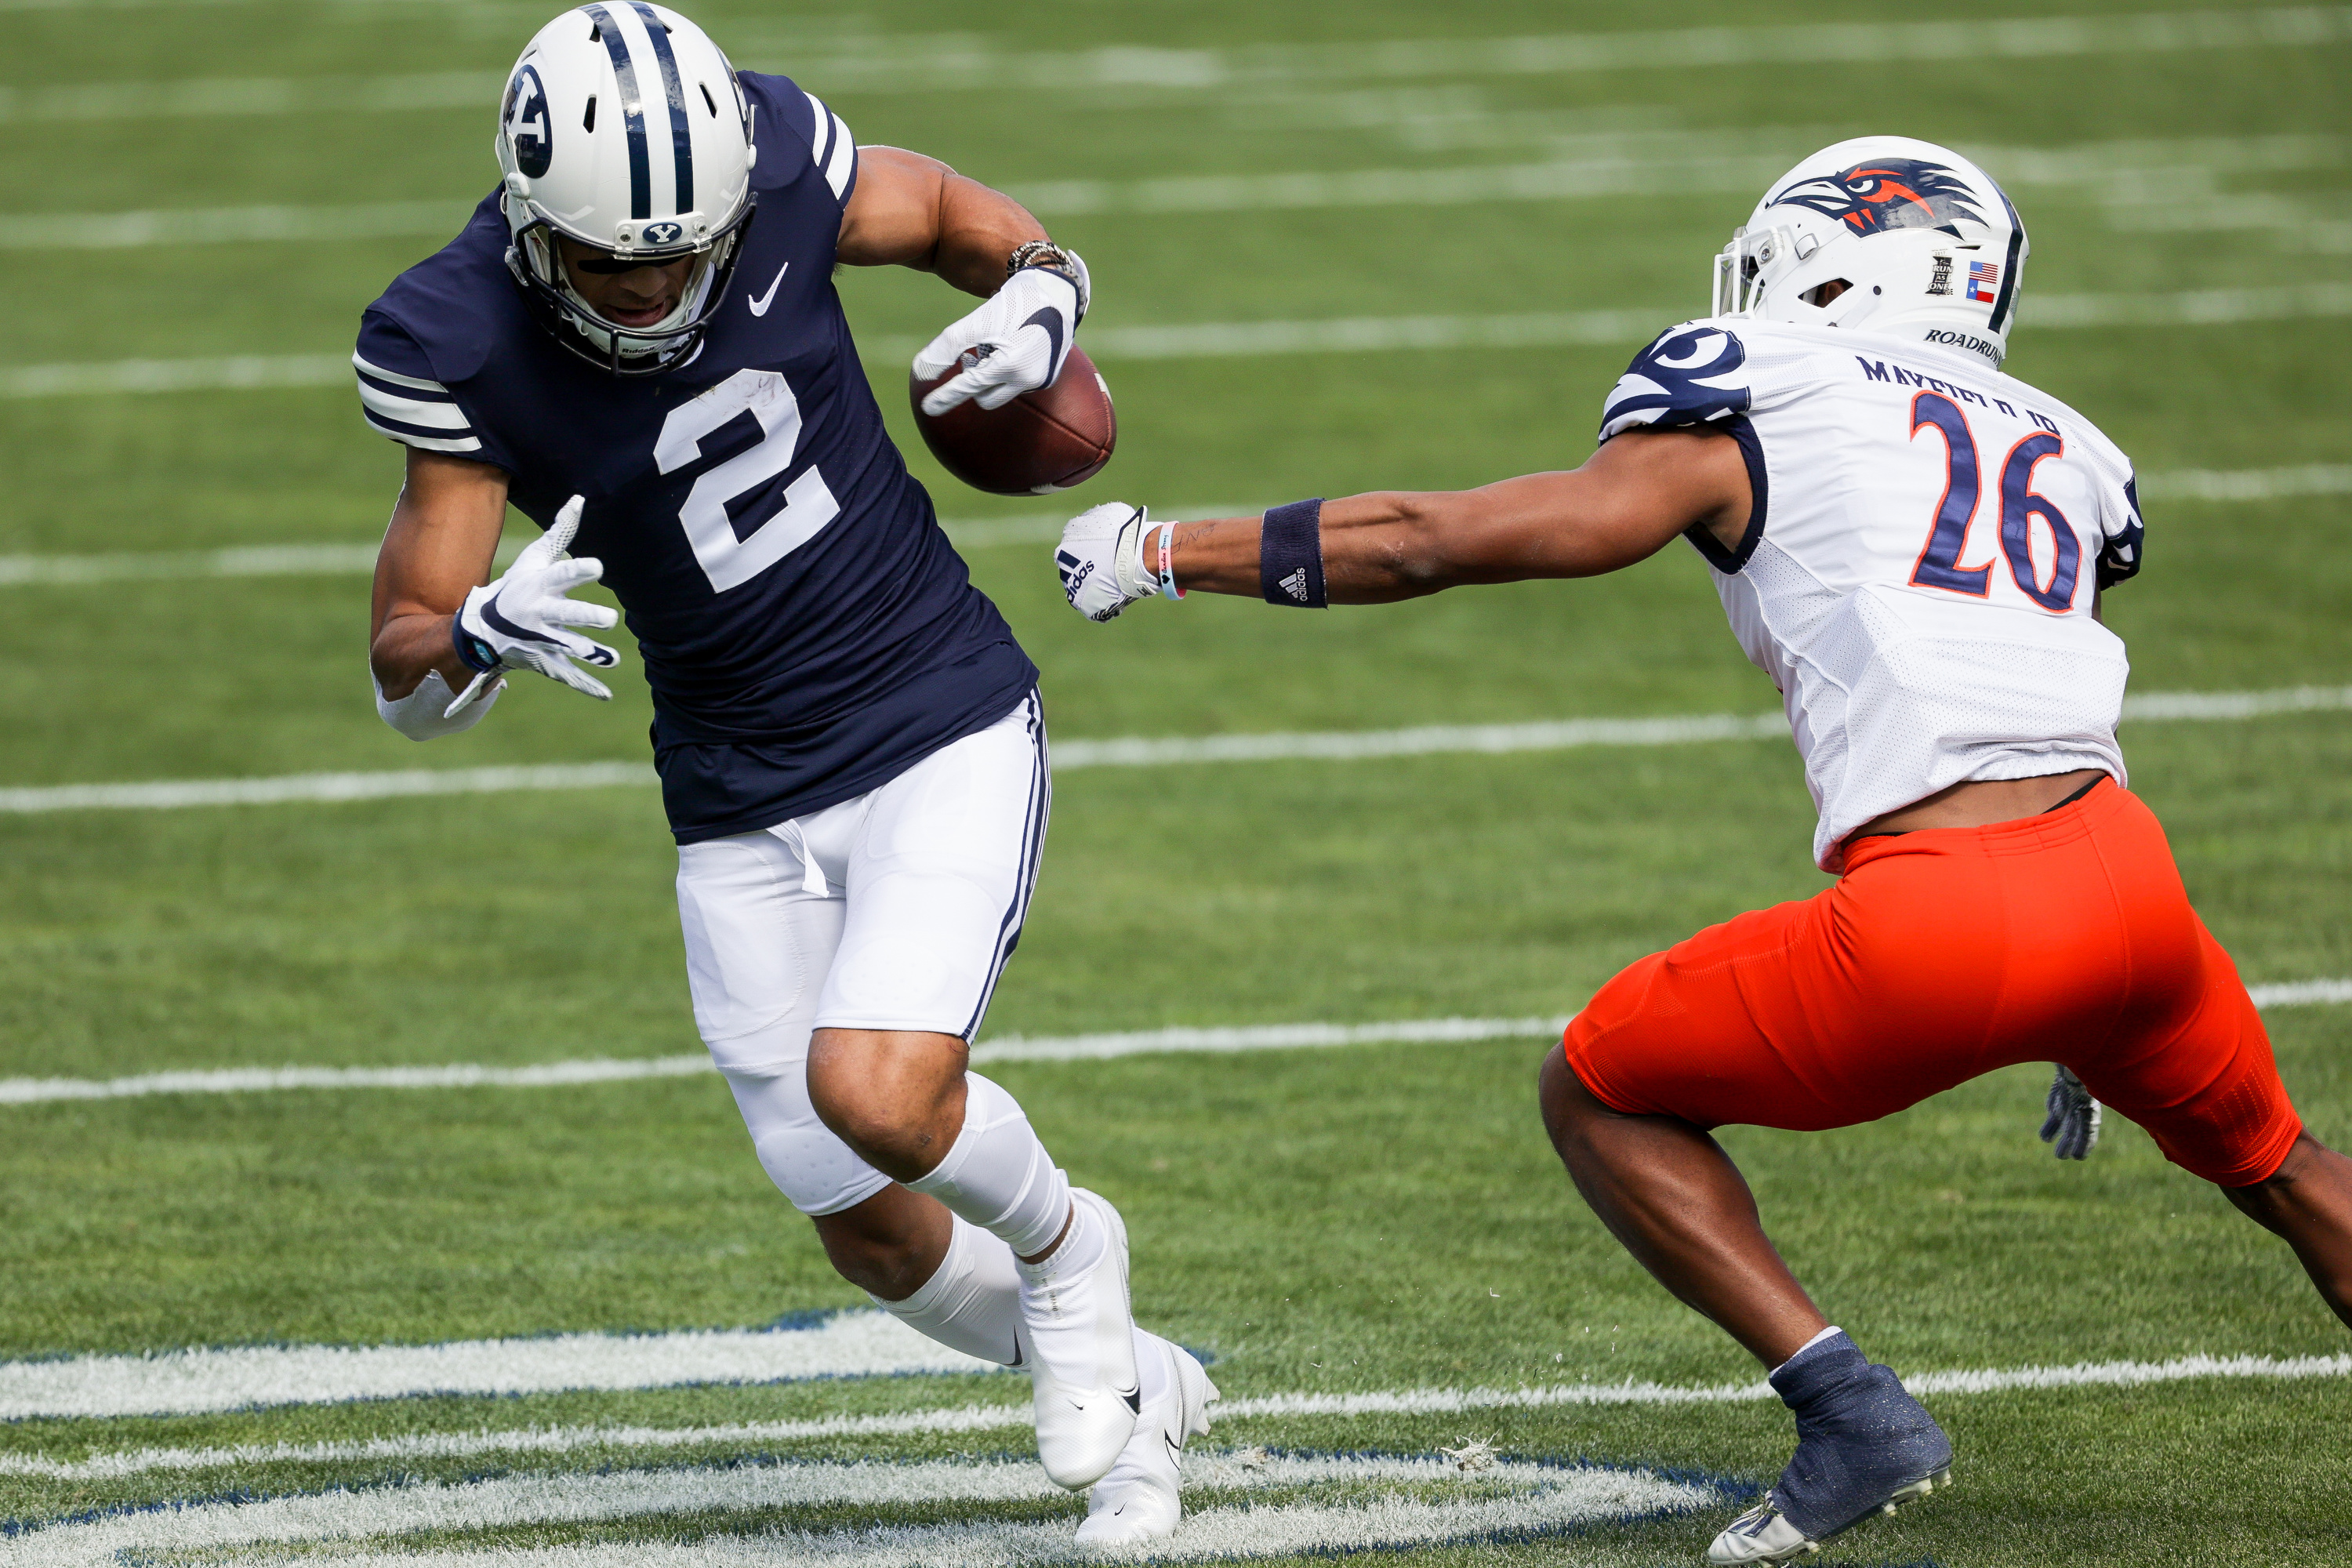 UTSA Roadrunners cornerback Corey Mayfield Jr. (26) forces a fumble from Brigham Young Cougars wide receiver Neil Pau'u (2) during the game at LaVell Edwards Stadium in Provo on Saturday, Oct. 10, 2020.